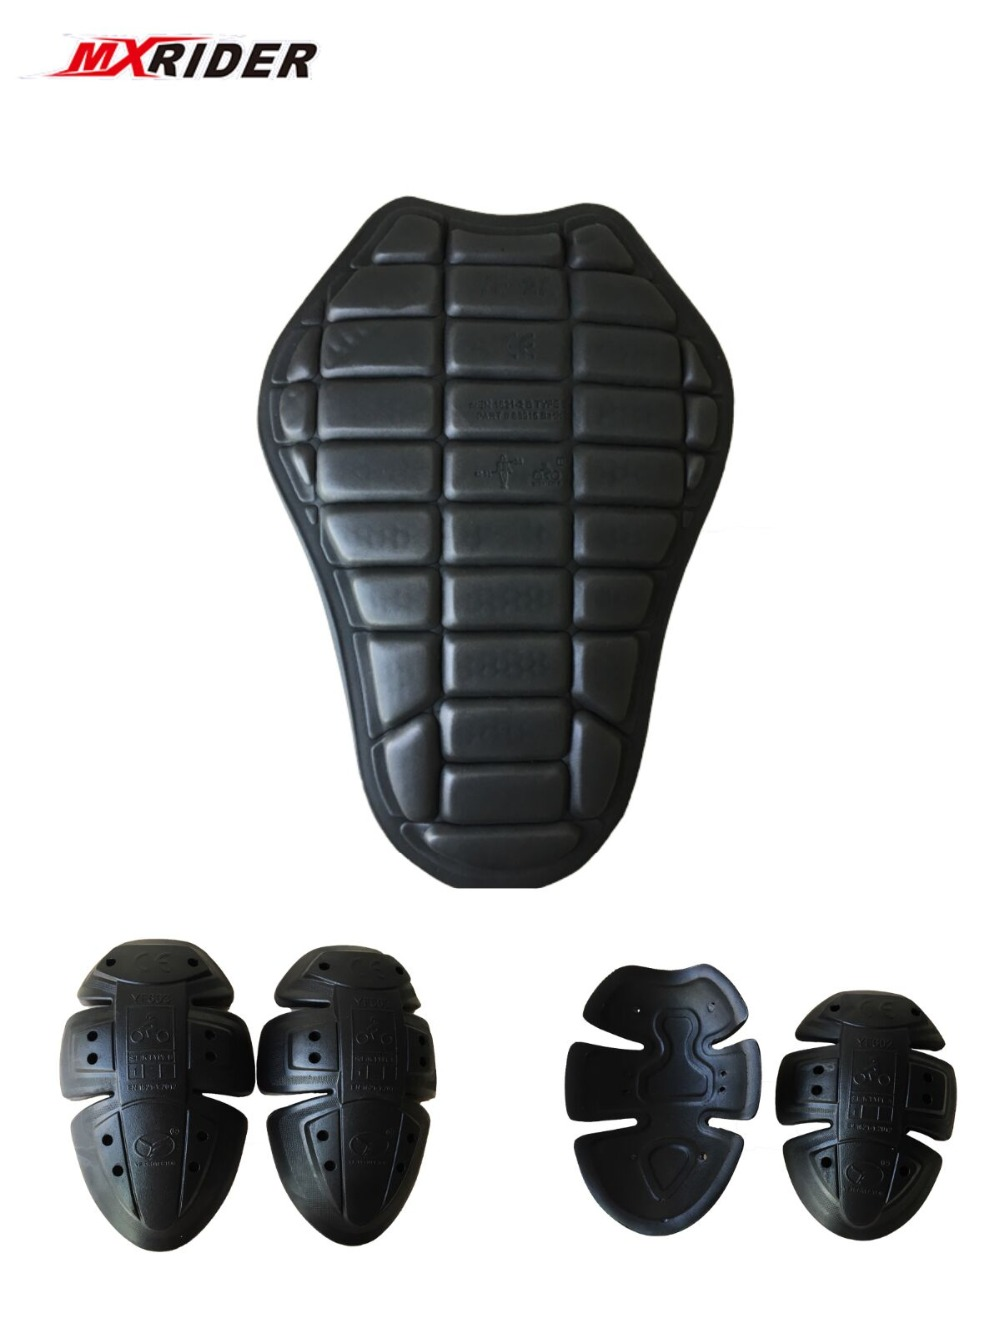 MXRIDER CE protector Motor Body Armor motorcycle jacket protective armor include 1 back pad 2 elbows 2 shoulder protectionMXRIDER CE protector Motor Body Armor motorcycle jacket protective armor include 1 back pad 2 elbows 2 shoulder protection